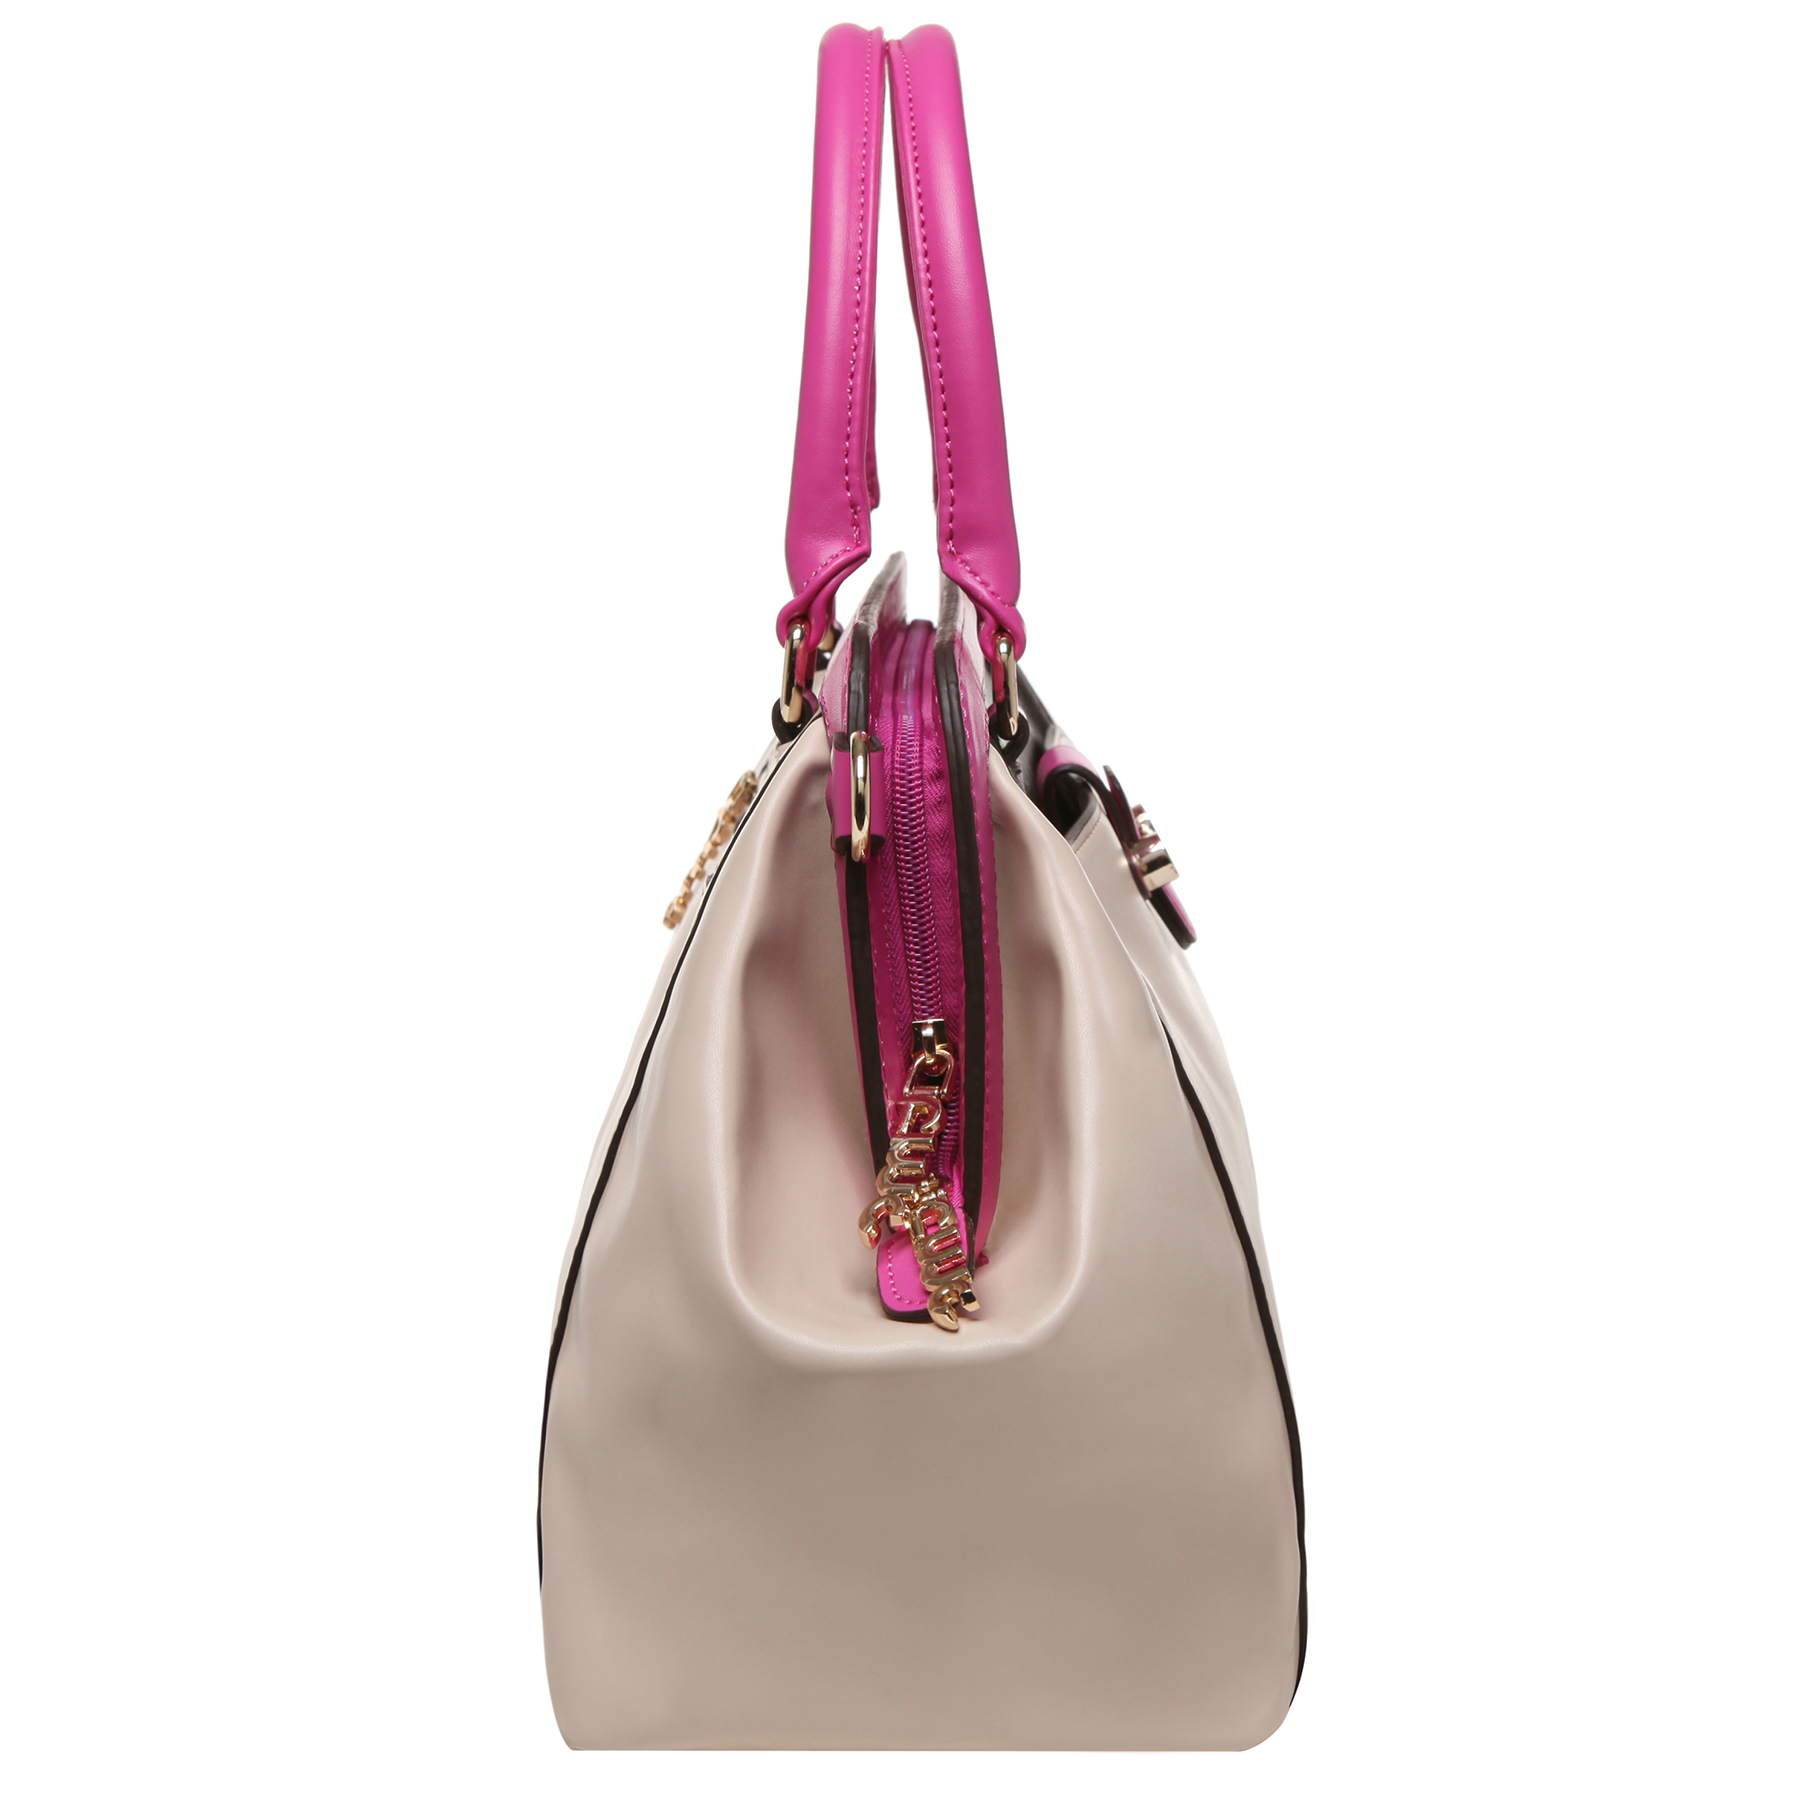 mg-collection-kaely-top-handle-tote-tb-h0603bei-5.jpg